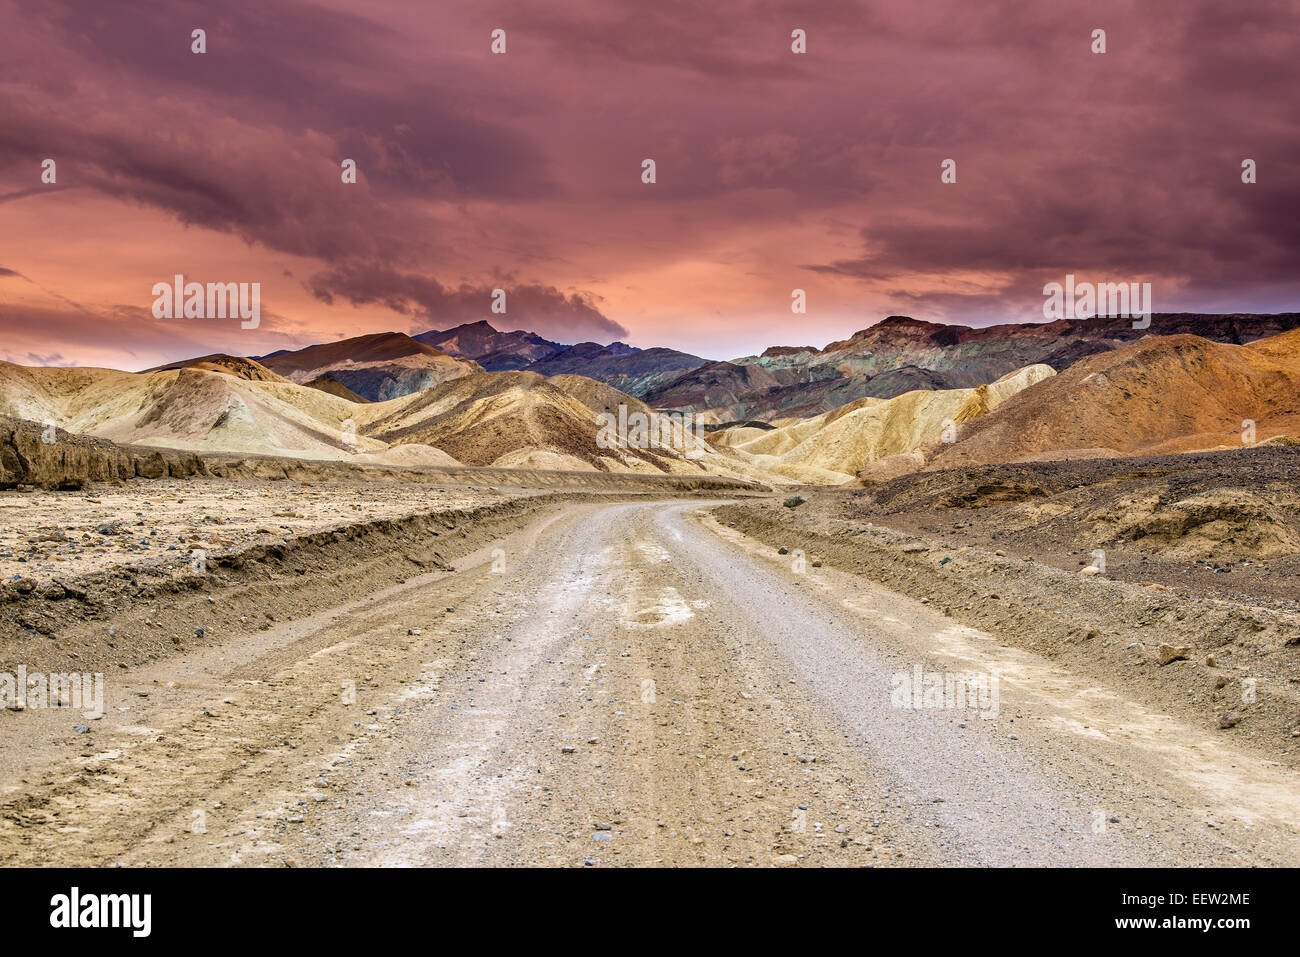 Scenic view over multicolored badlands at Twenty Mule Team Canyon, Death Valley National Park, California, USA - Stock Image